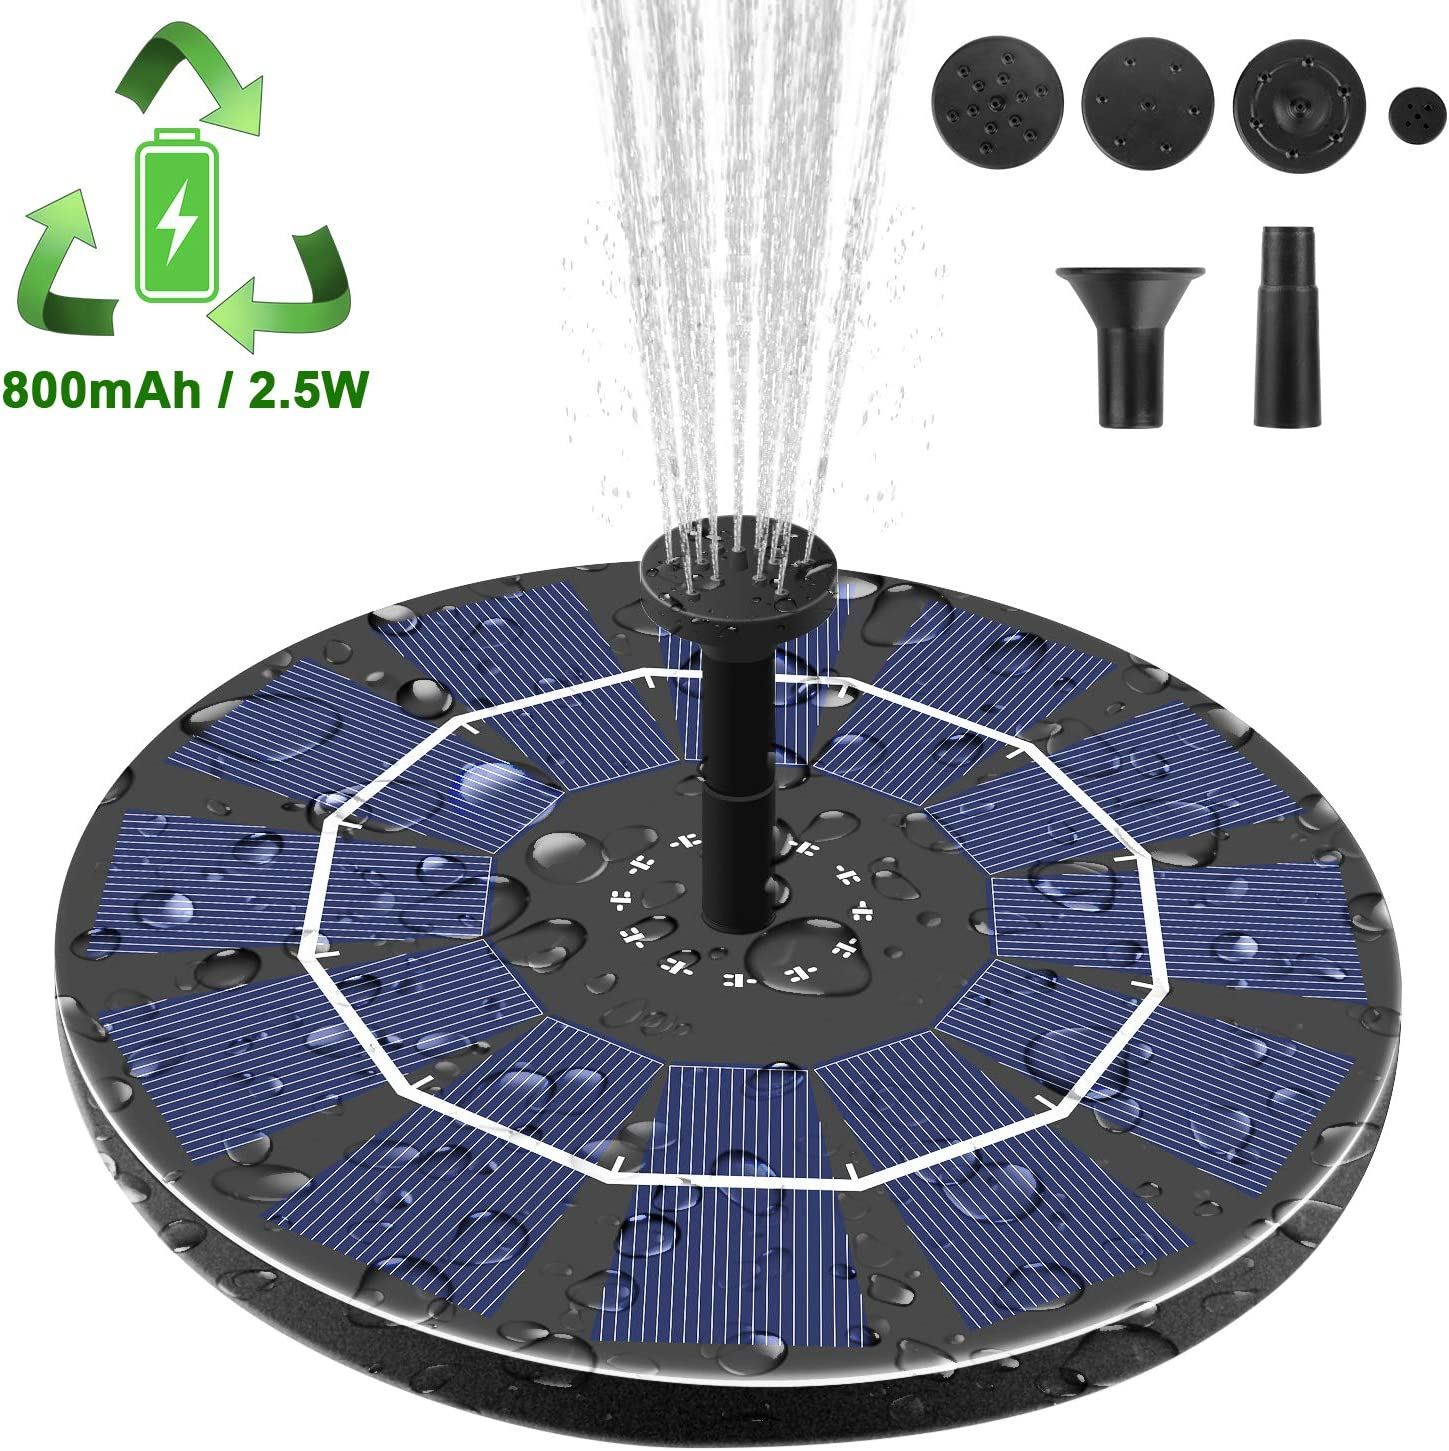 Viajero Latest Upgrade Solar Fountain Pump Circulation Pumps